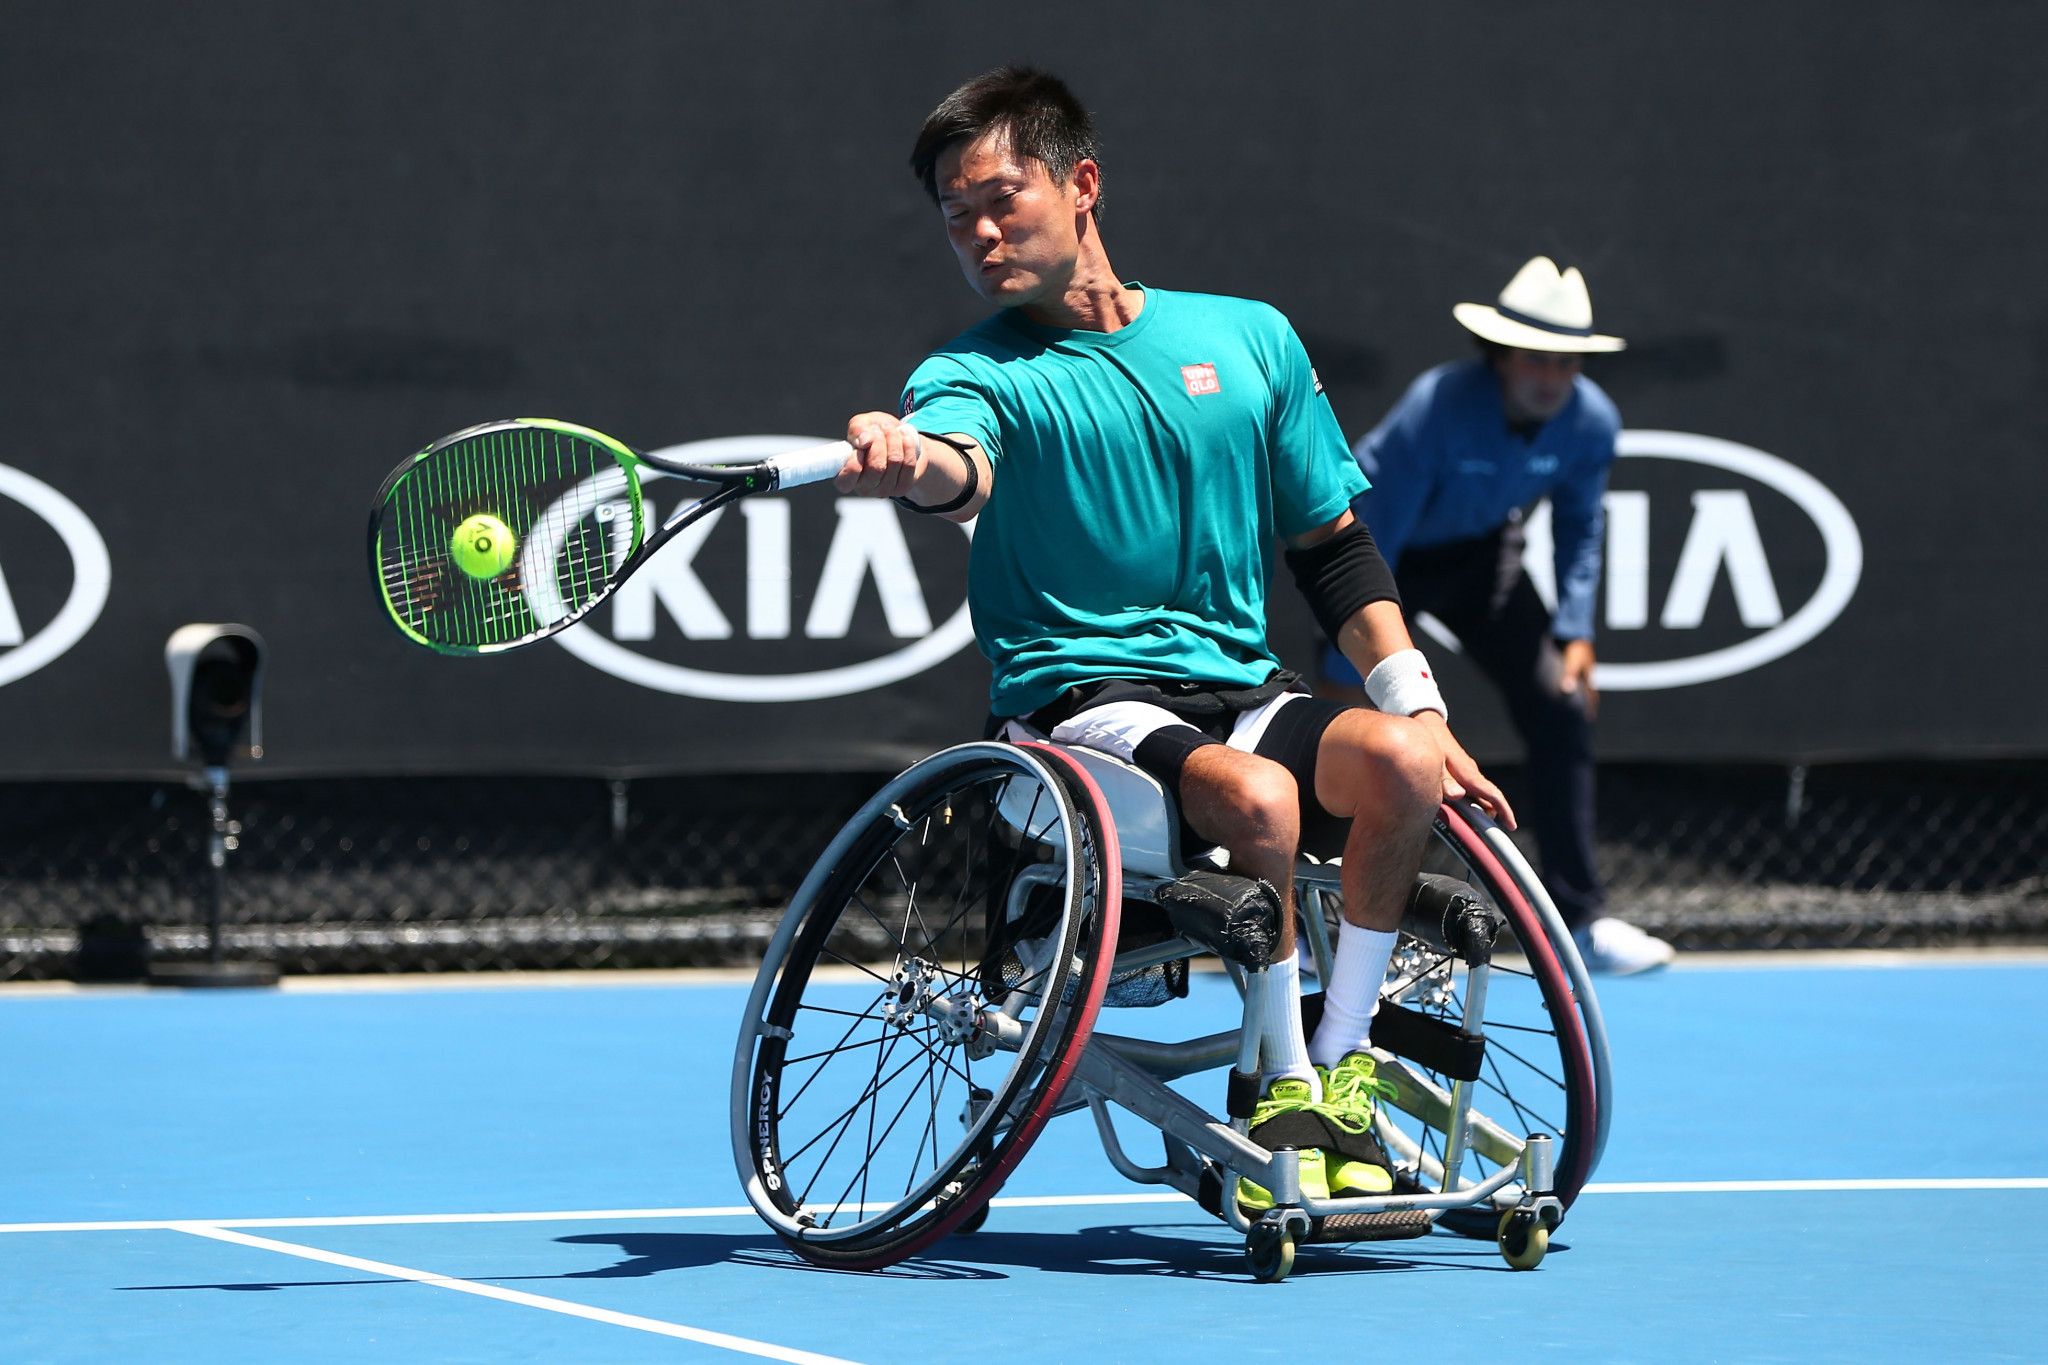 Kunieda targets fourth title of 2019 at ITF Japan Open